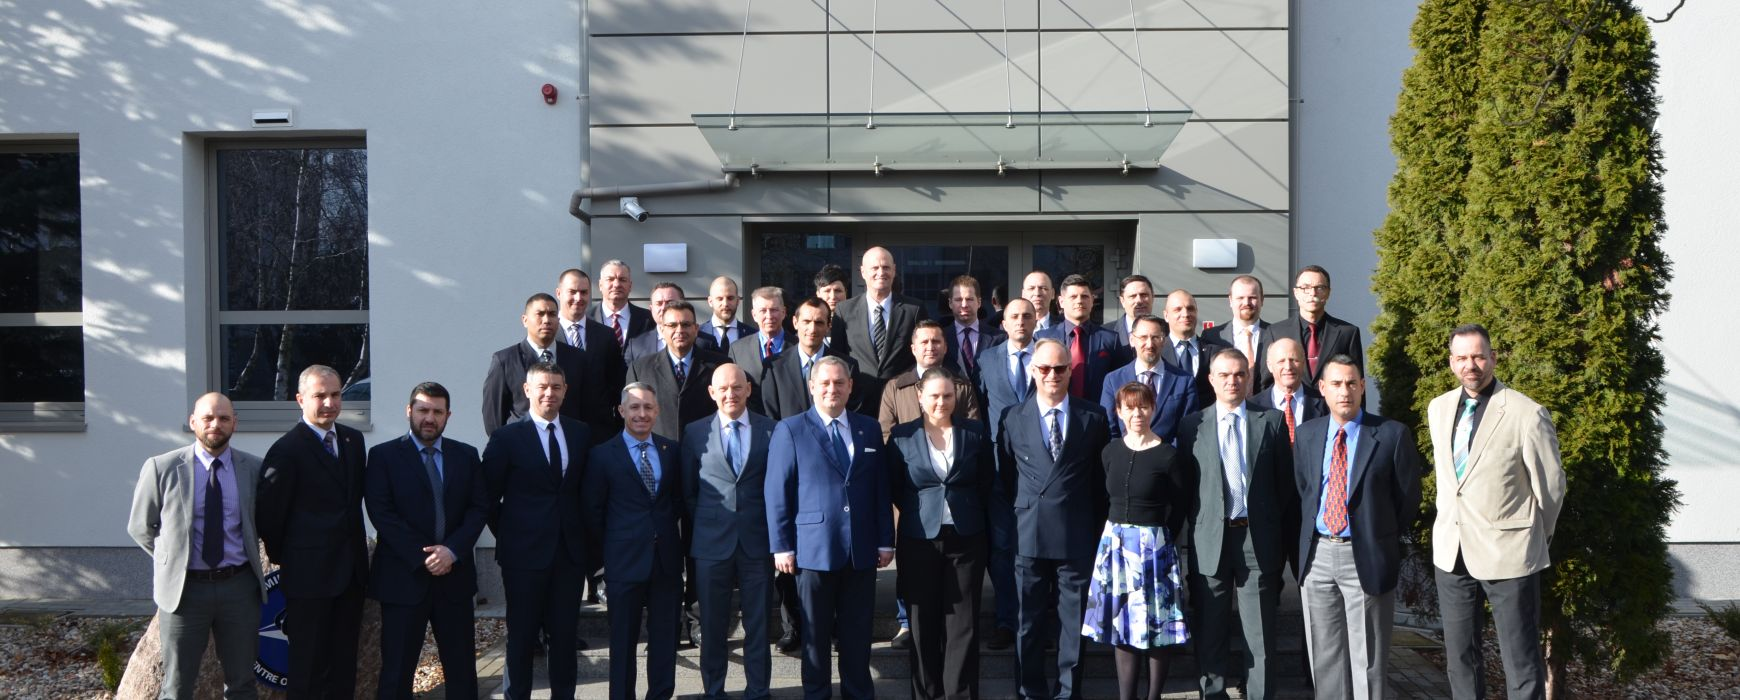 The NATO Military Police Centre of Excellence (NATO MP COE) hosted the 3rd Provost Marshal Forum (PMF 2017-3)